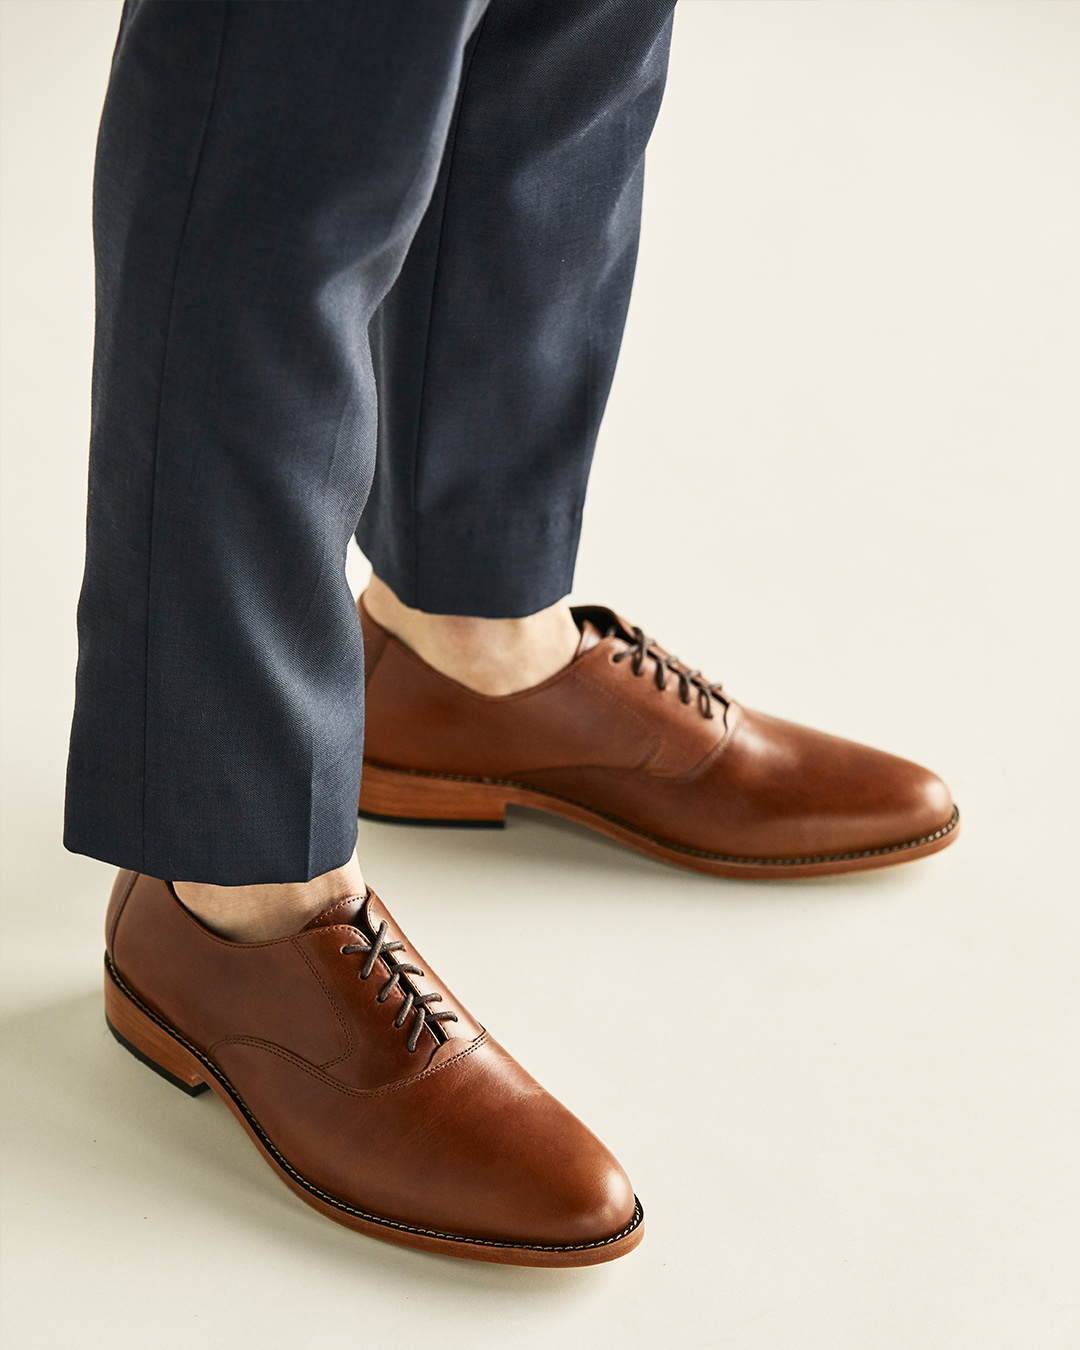 ethical men's style